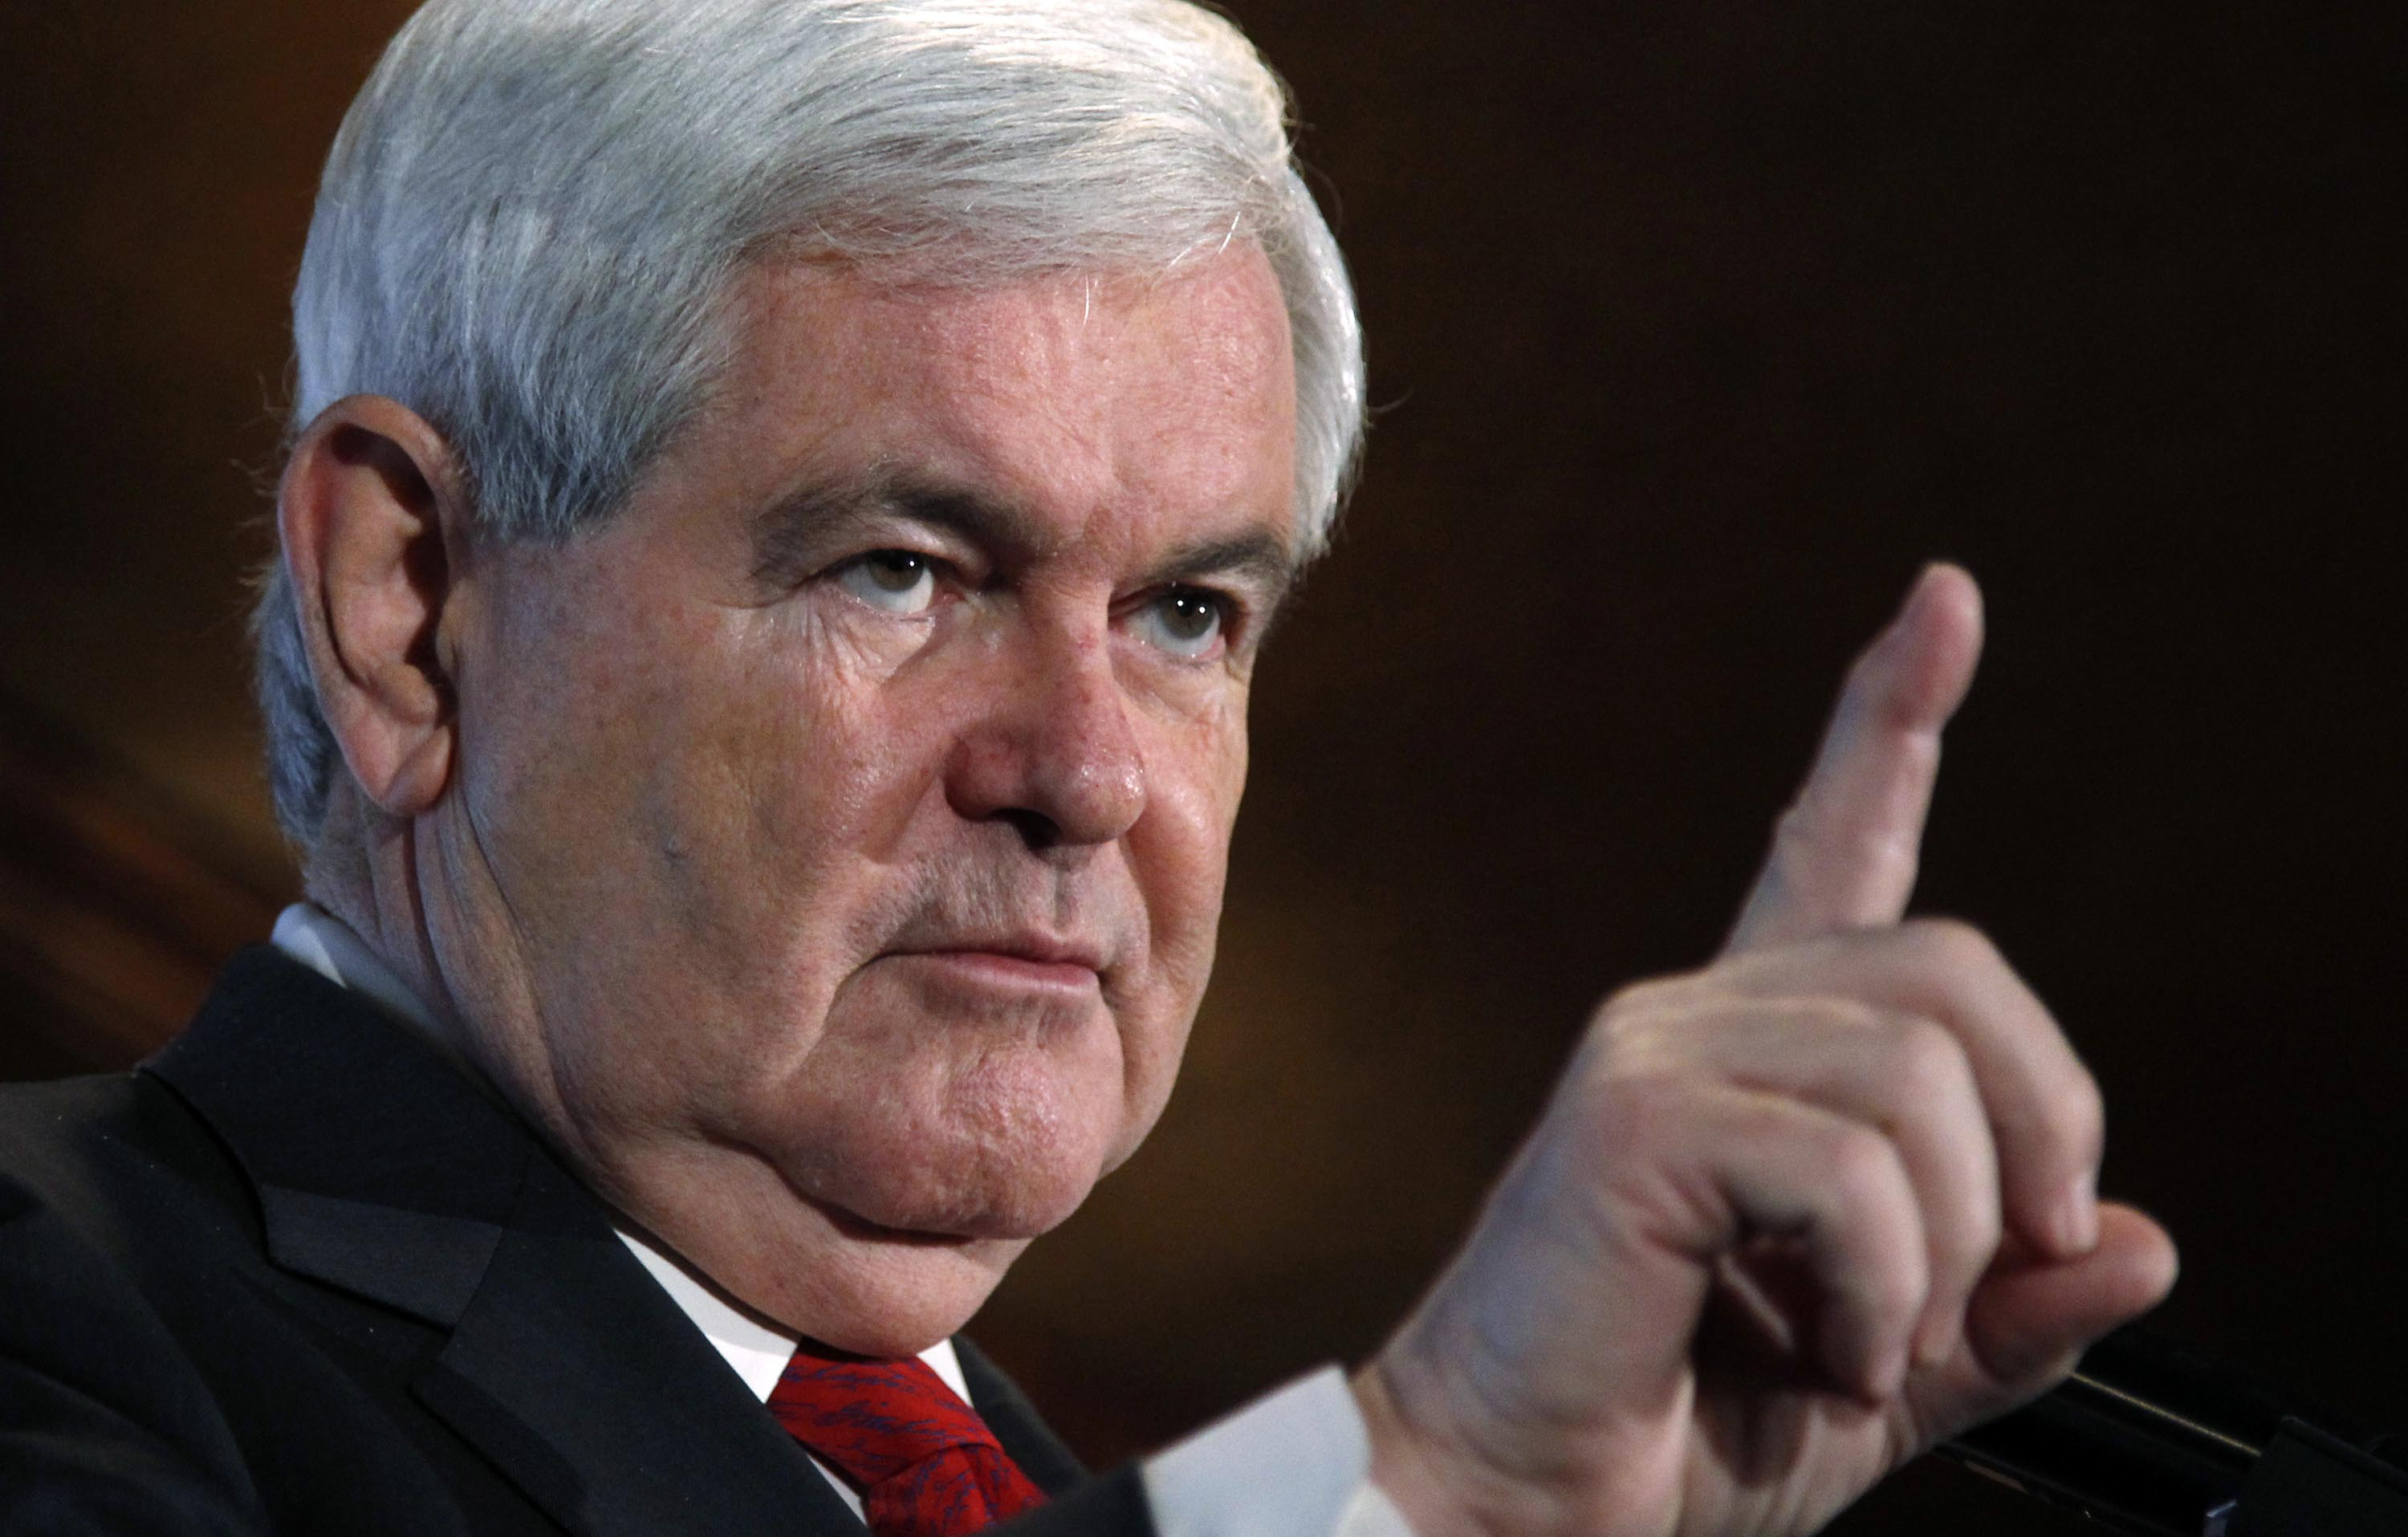 Gingrich Says Mueller Isn't Neutral, Calls On Congress To Abolish Special Counsel